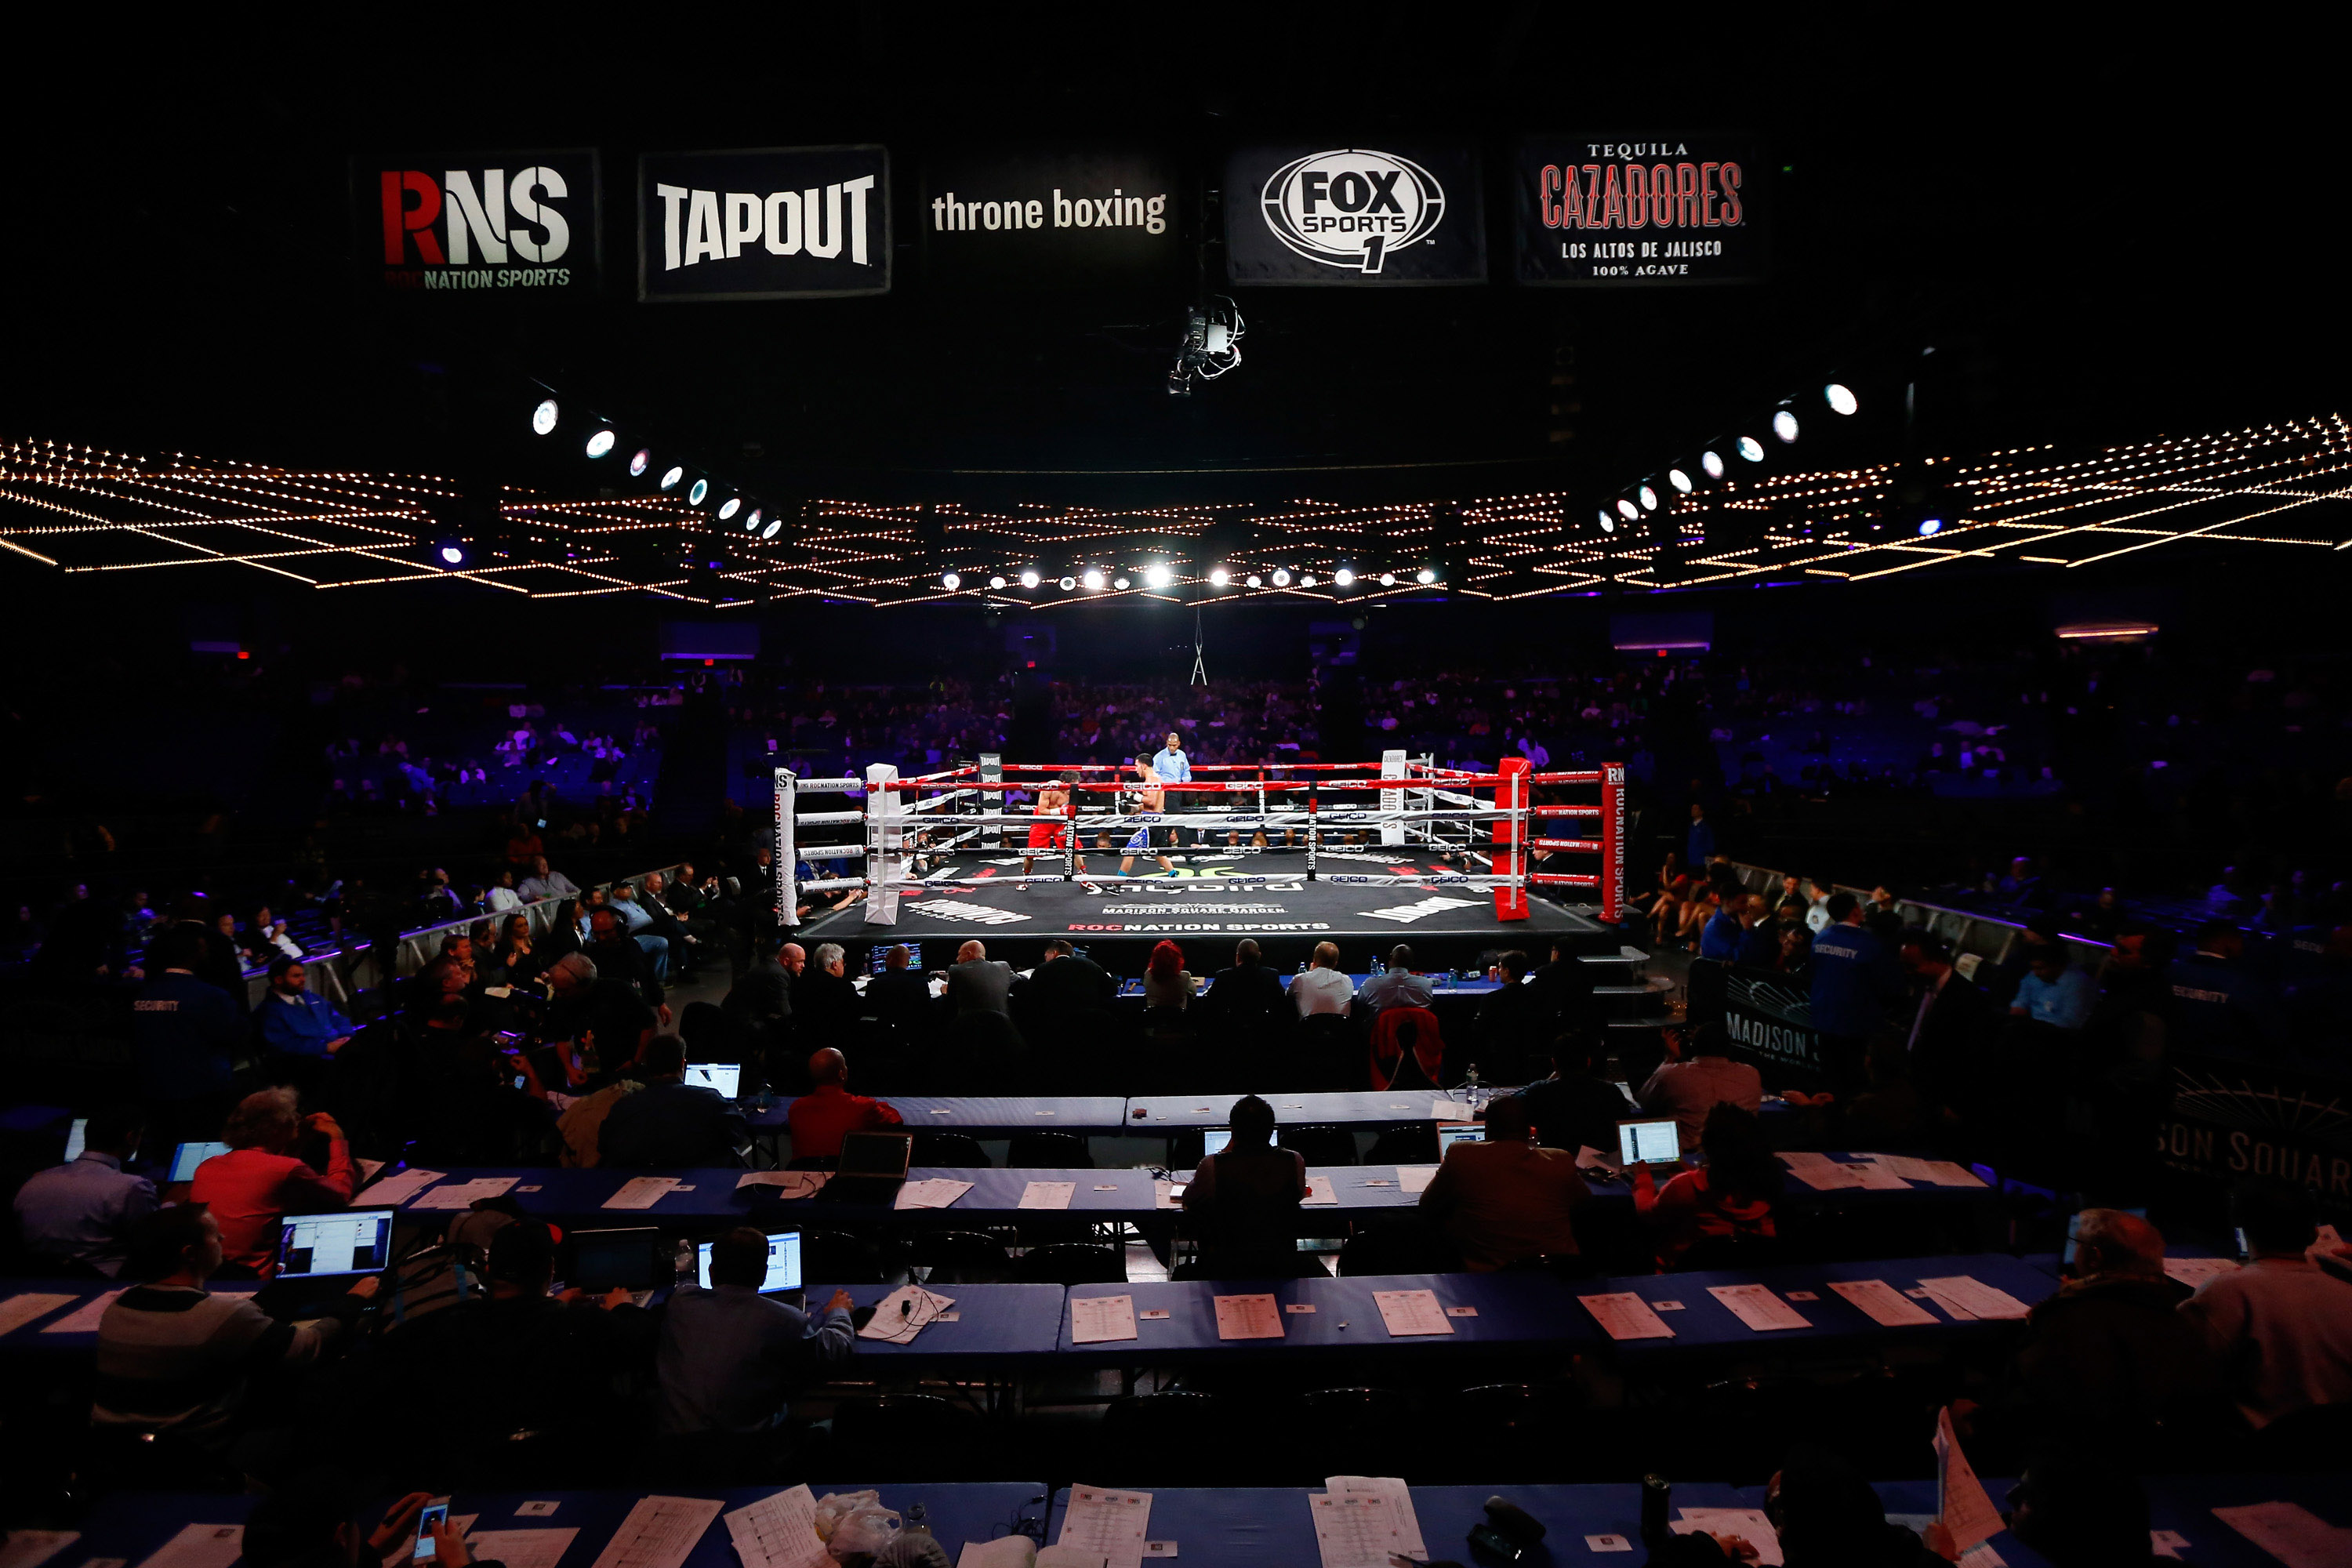 Boxing events in madison square garden garden ftempo - Madison square garden event schedule ...